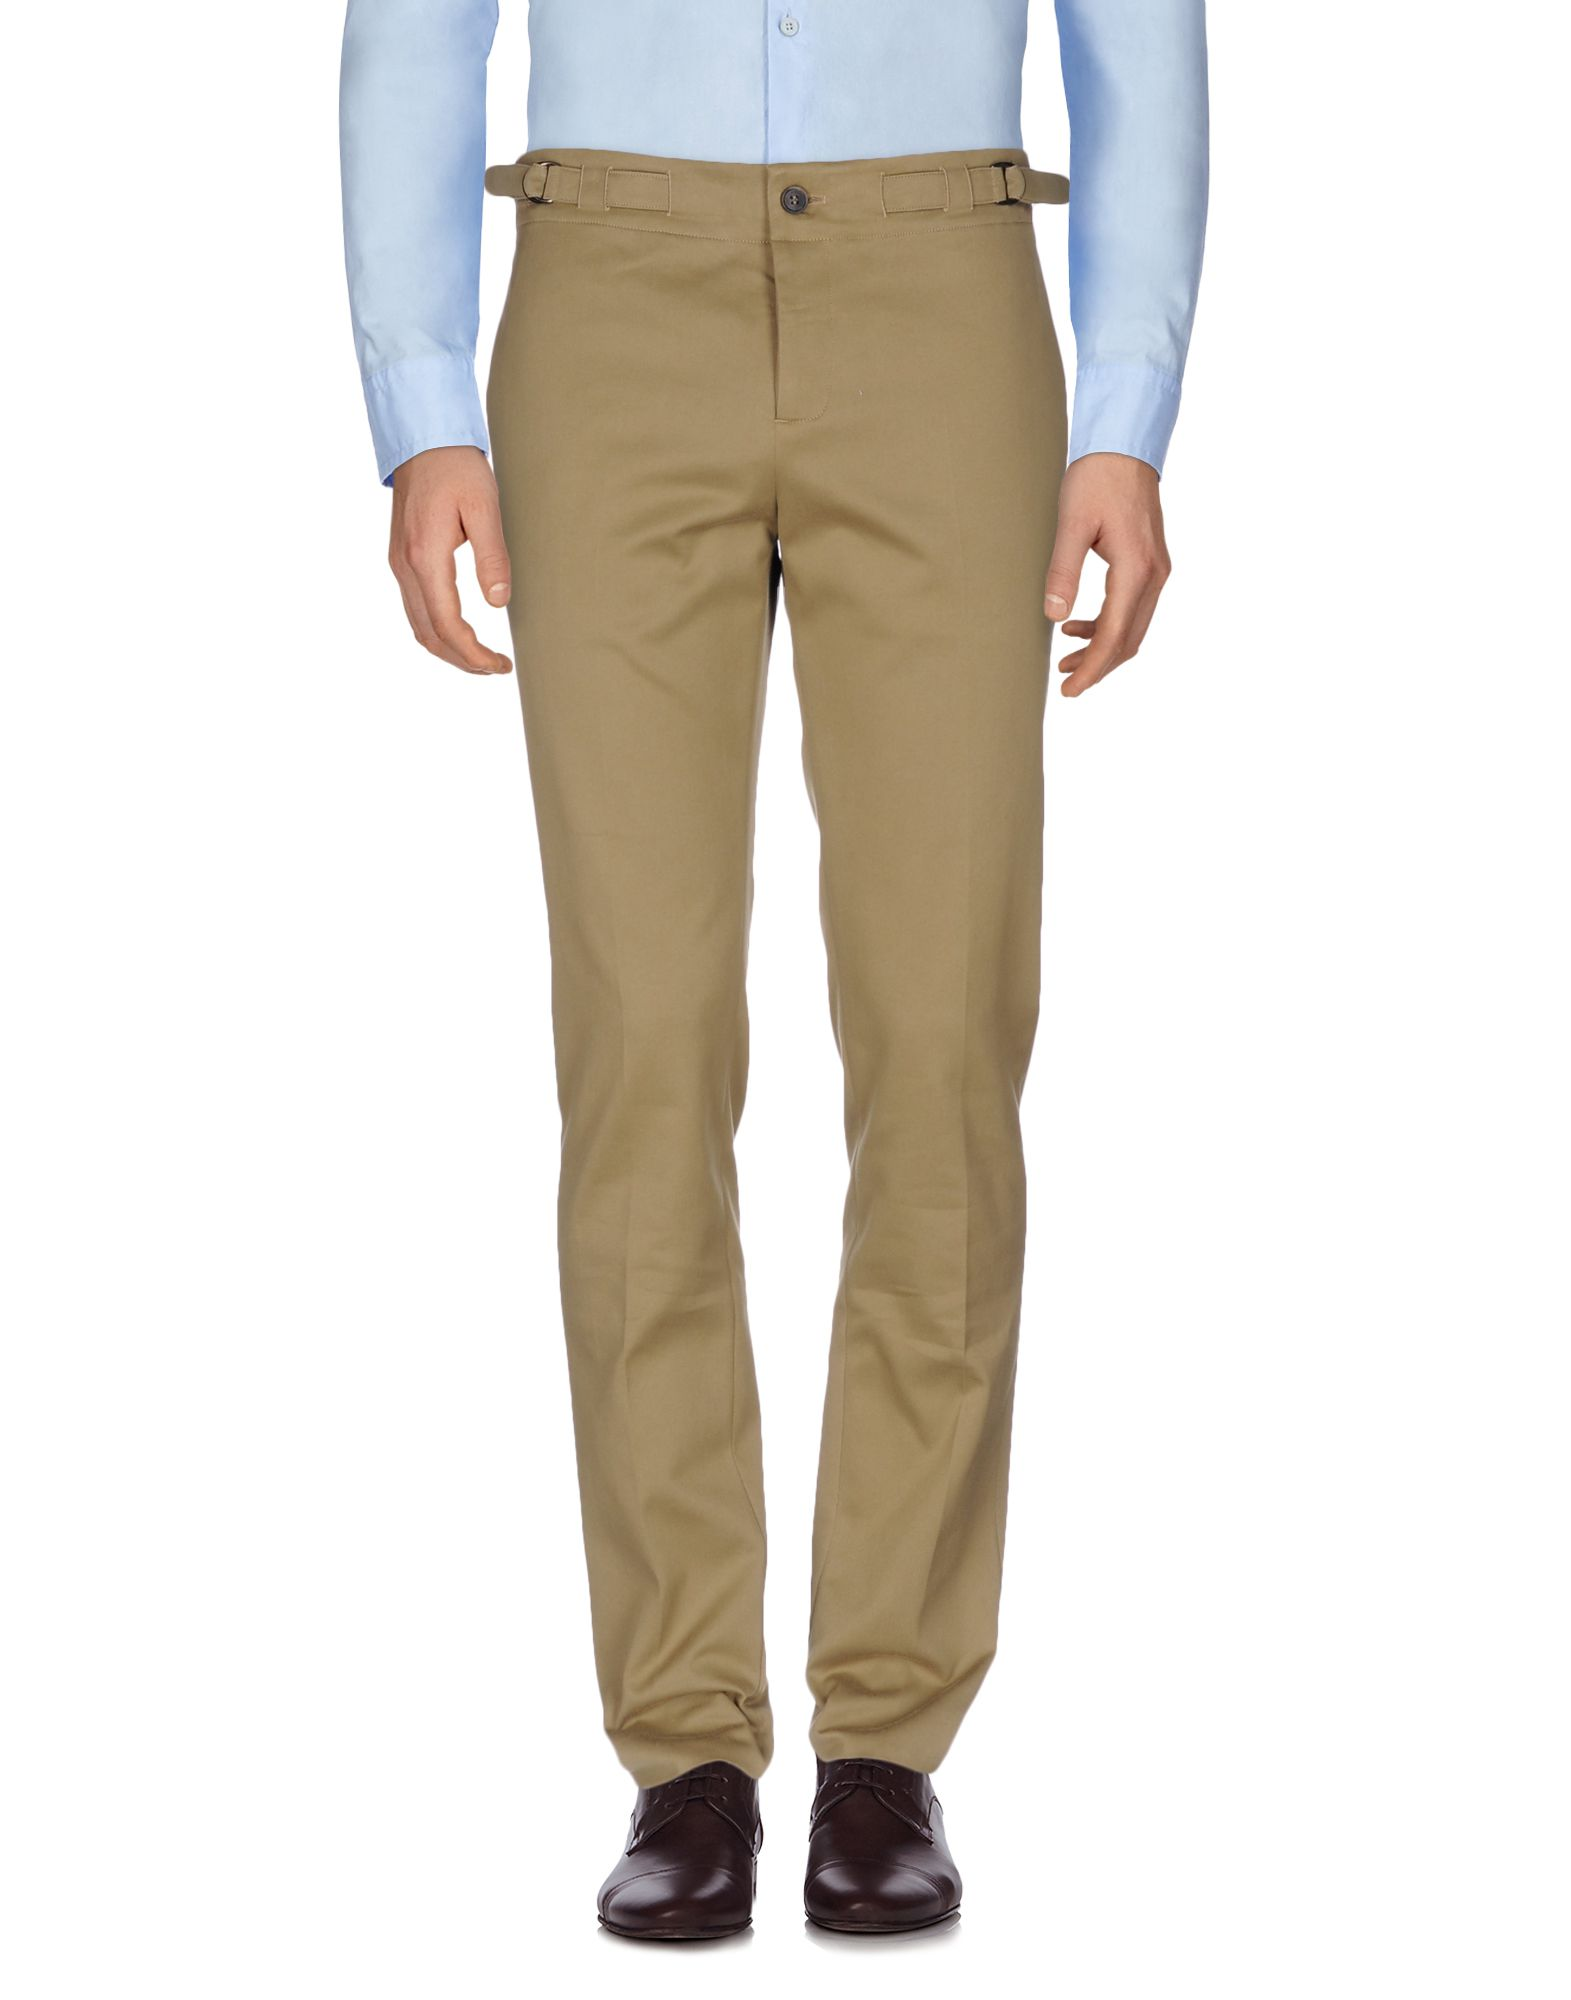 FAÇONNABLE Casual Pants in Beige